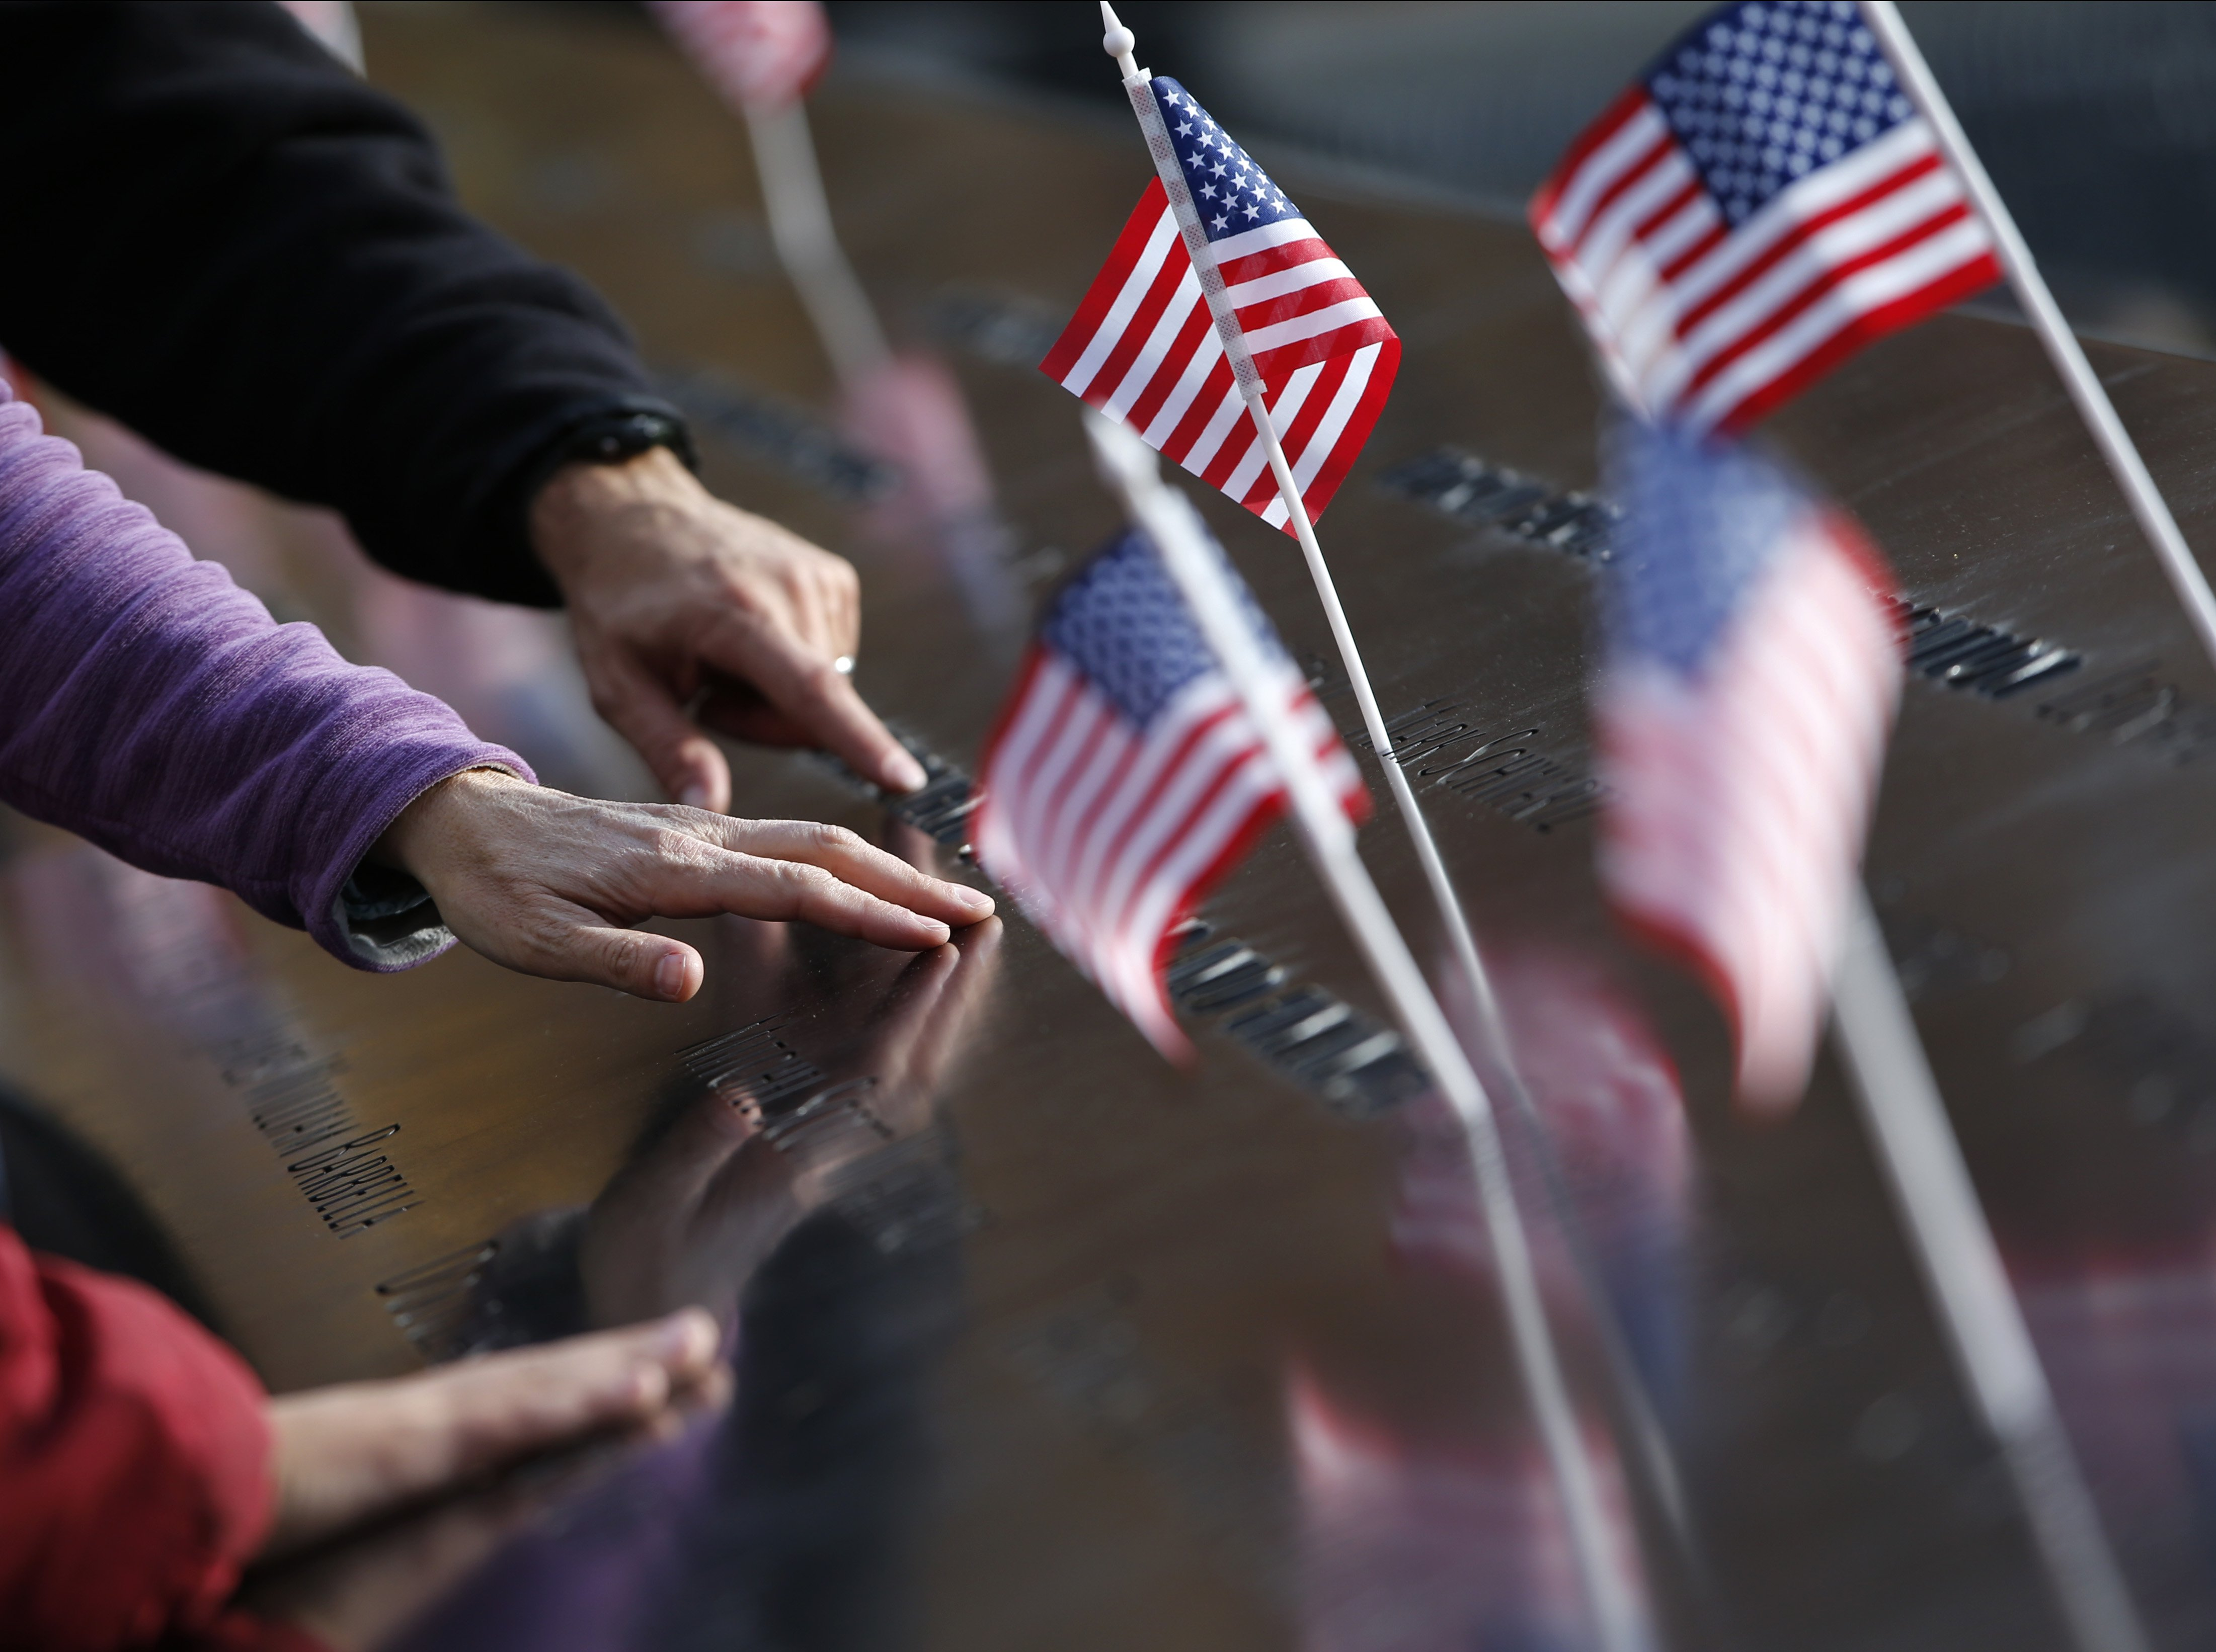 Hands reach out to touch the names inscribed at the South Pool of the 9/11 Memorial in New York City on Nov. 9, 2015.